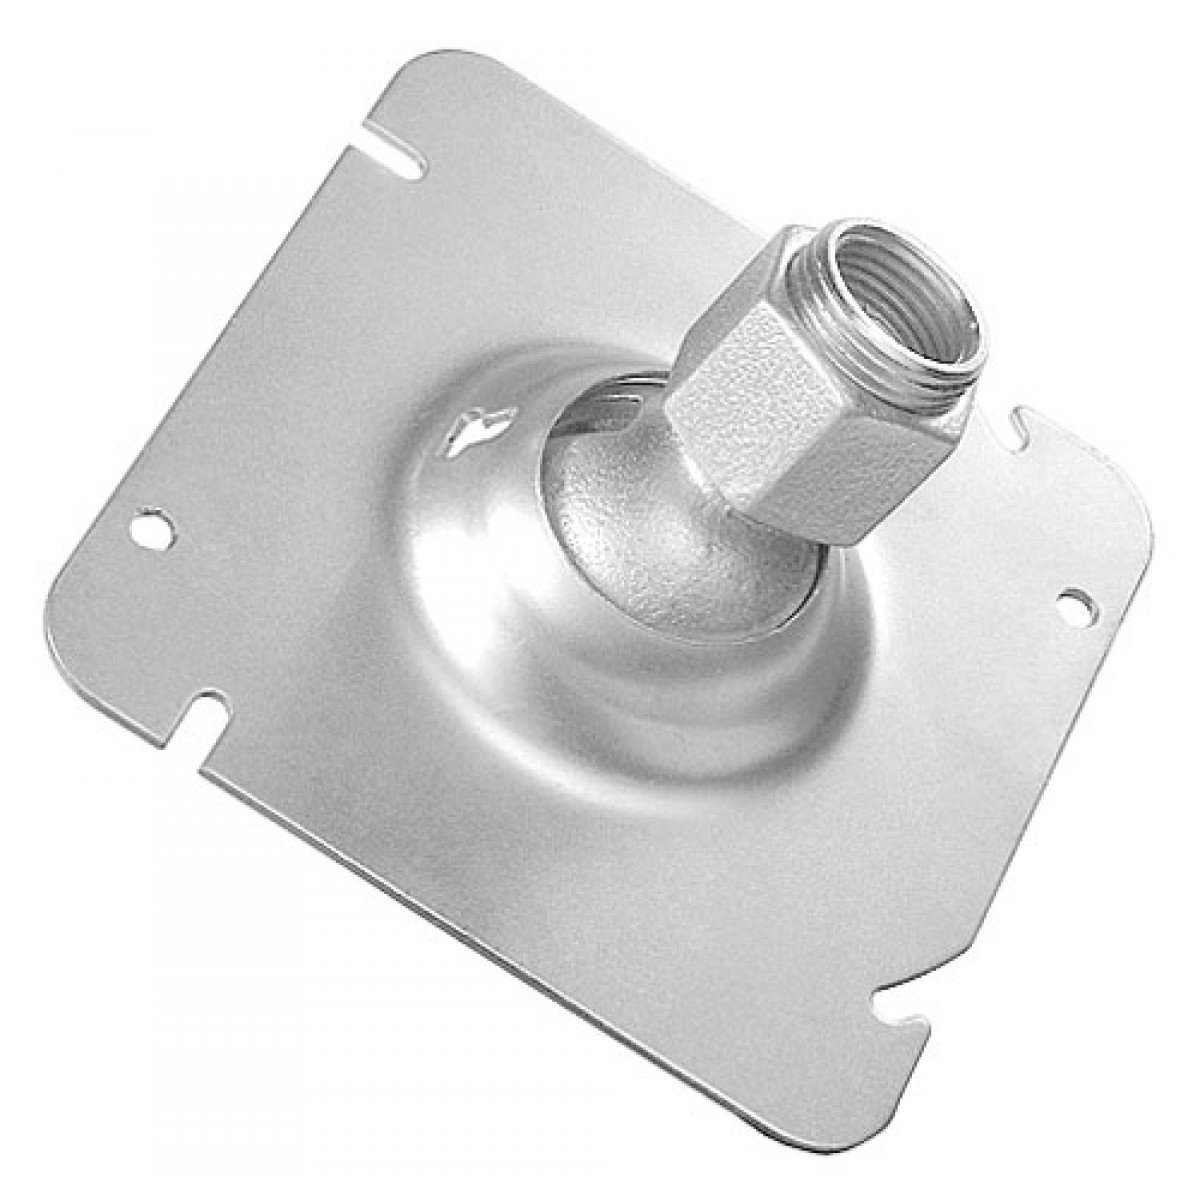 2 Pcs, Zinc Plated Steel 4-11/16 In. Square Swivel Fixture Hanger for 1/2 Or 3/4 In. Pipe to Hang Light Fixtures, Security Cameras, Speakers & Electrical/Electronic Devices